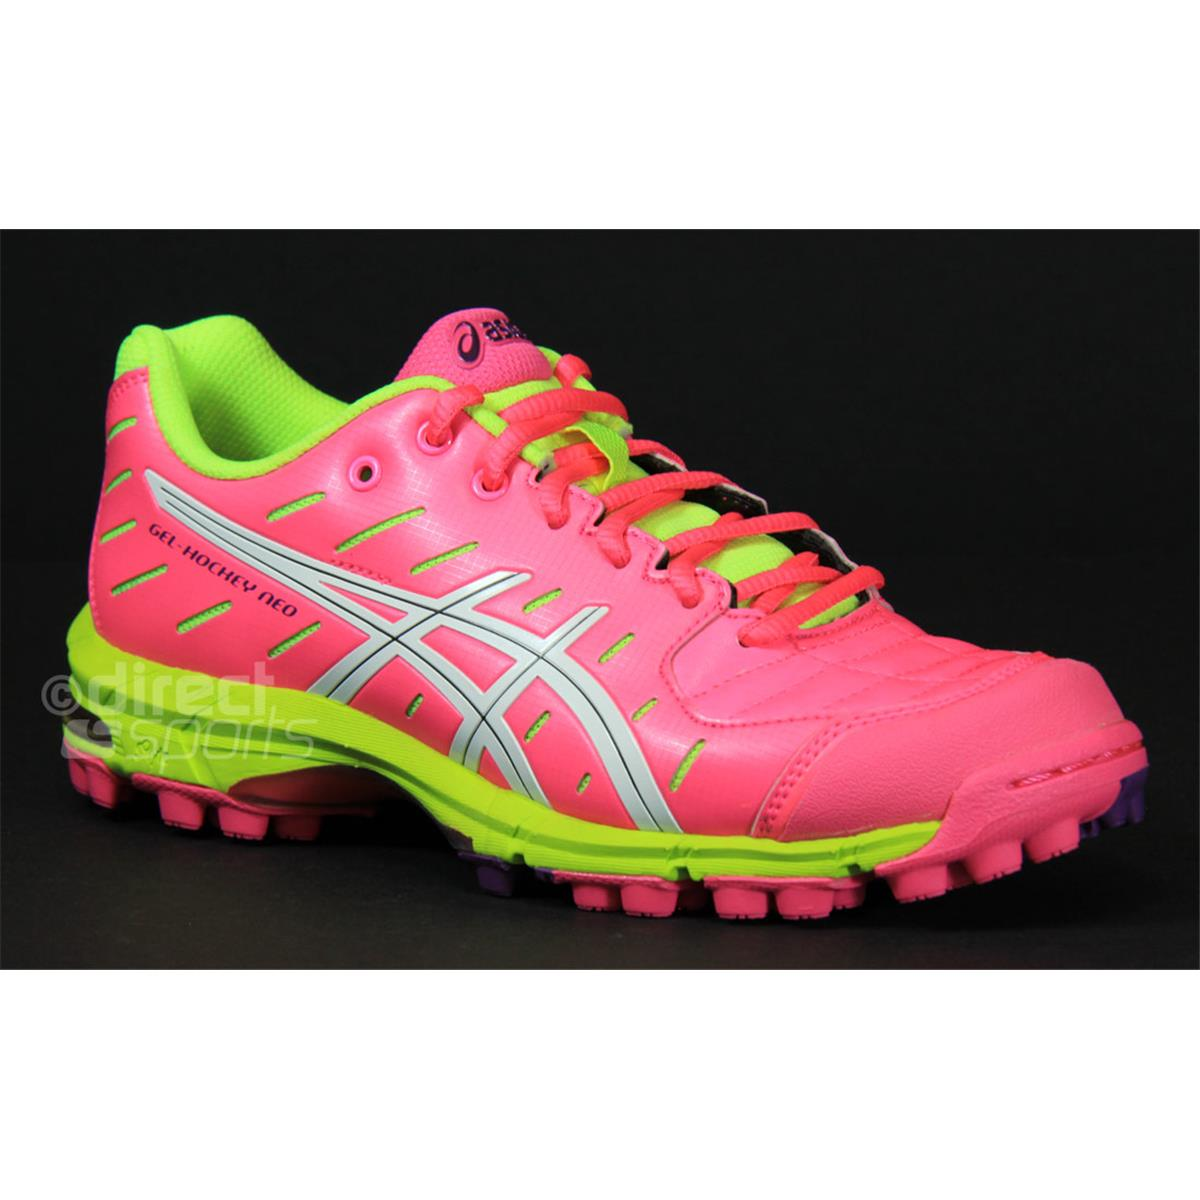 chaussures femmes de hockey hockey chaussures asics femmes 94472ab - discover-voip.info